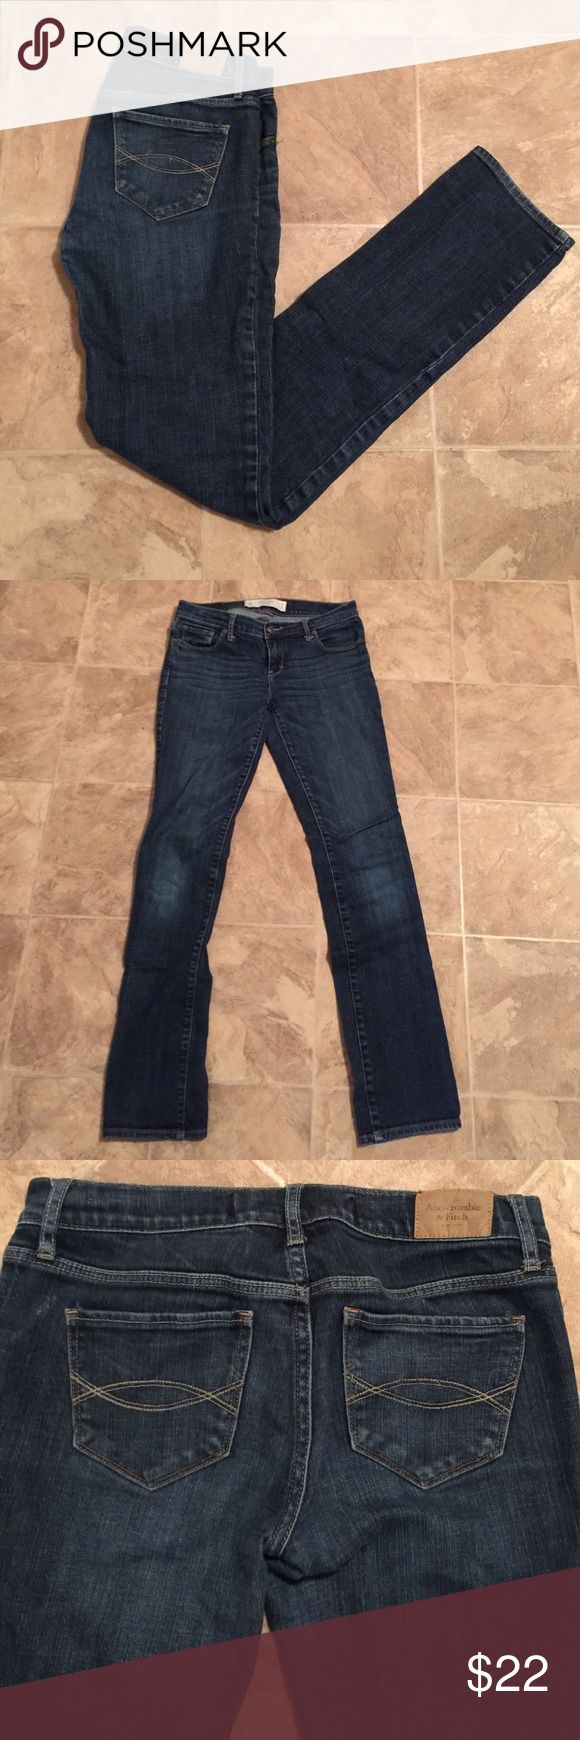 Abercrombie & Fitch Perfect stretch Jeans EUC A & F Perfect stretch Jeans. EUC.                         (3) Abercrombie & Fitch Jeans Straight Leg